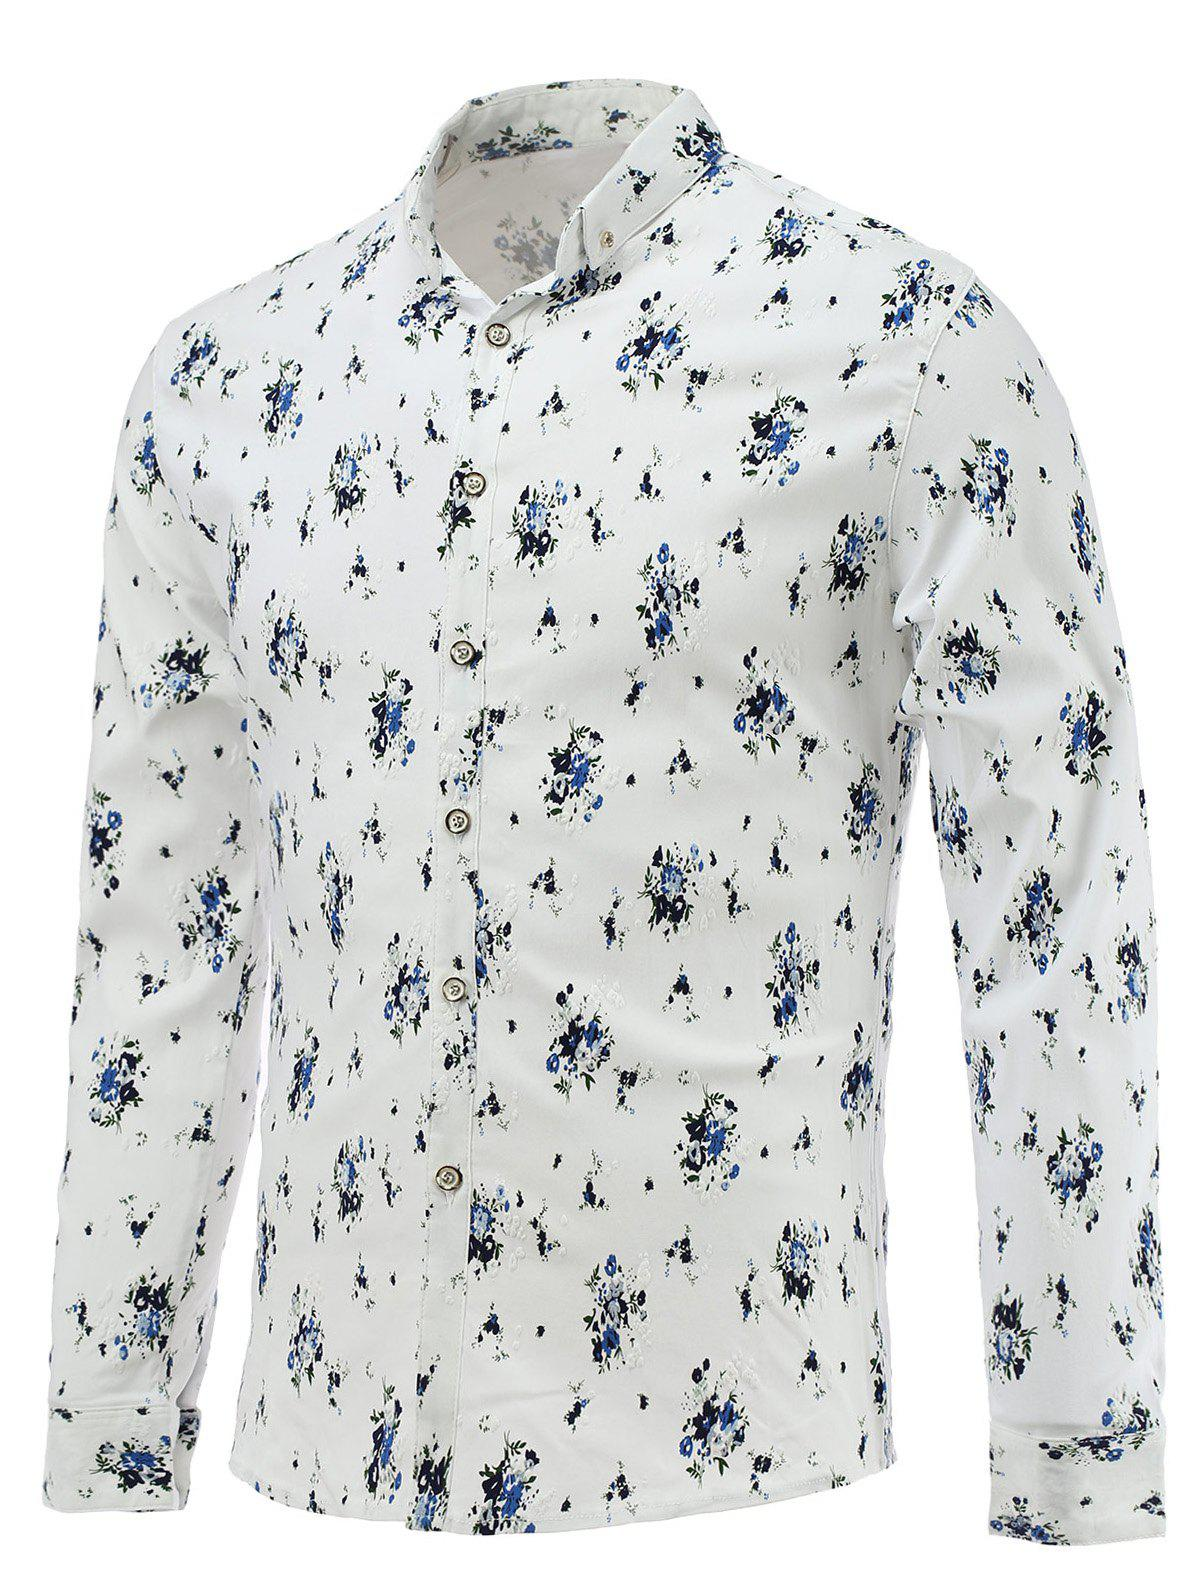 Turn-Down Collar Long Sleeve Tiny Floral Printed Shirt - BLUE 3XL